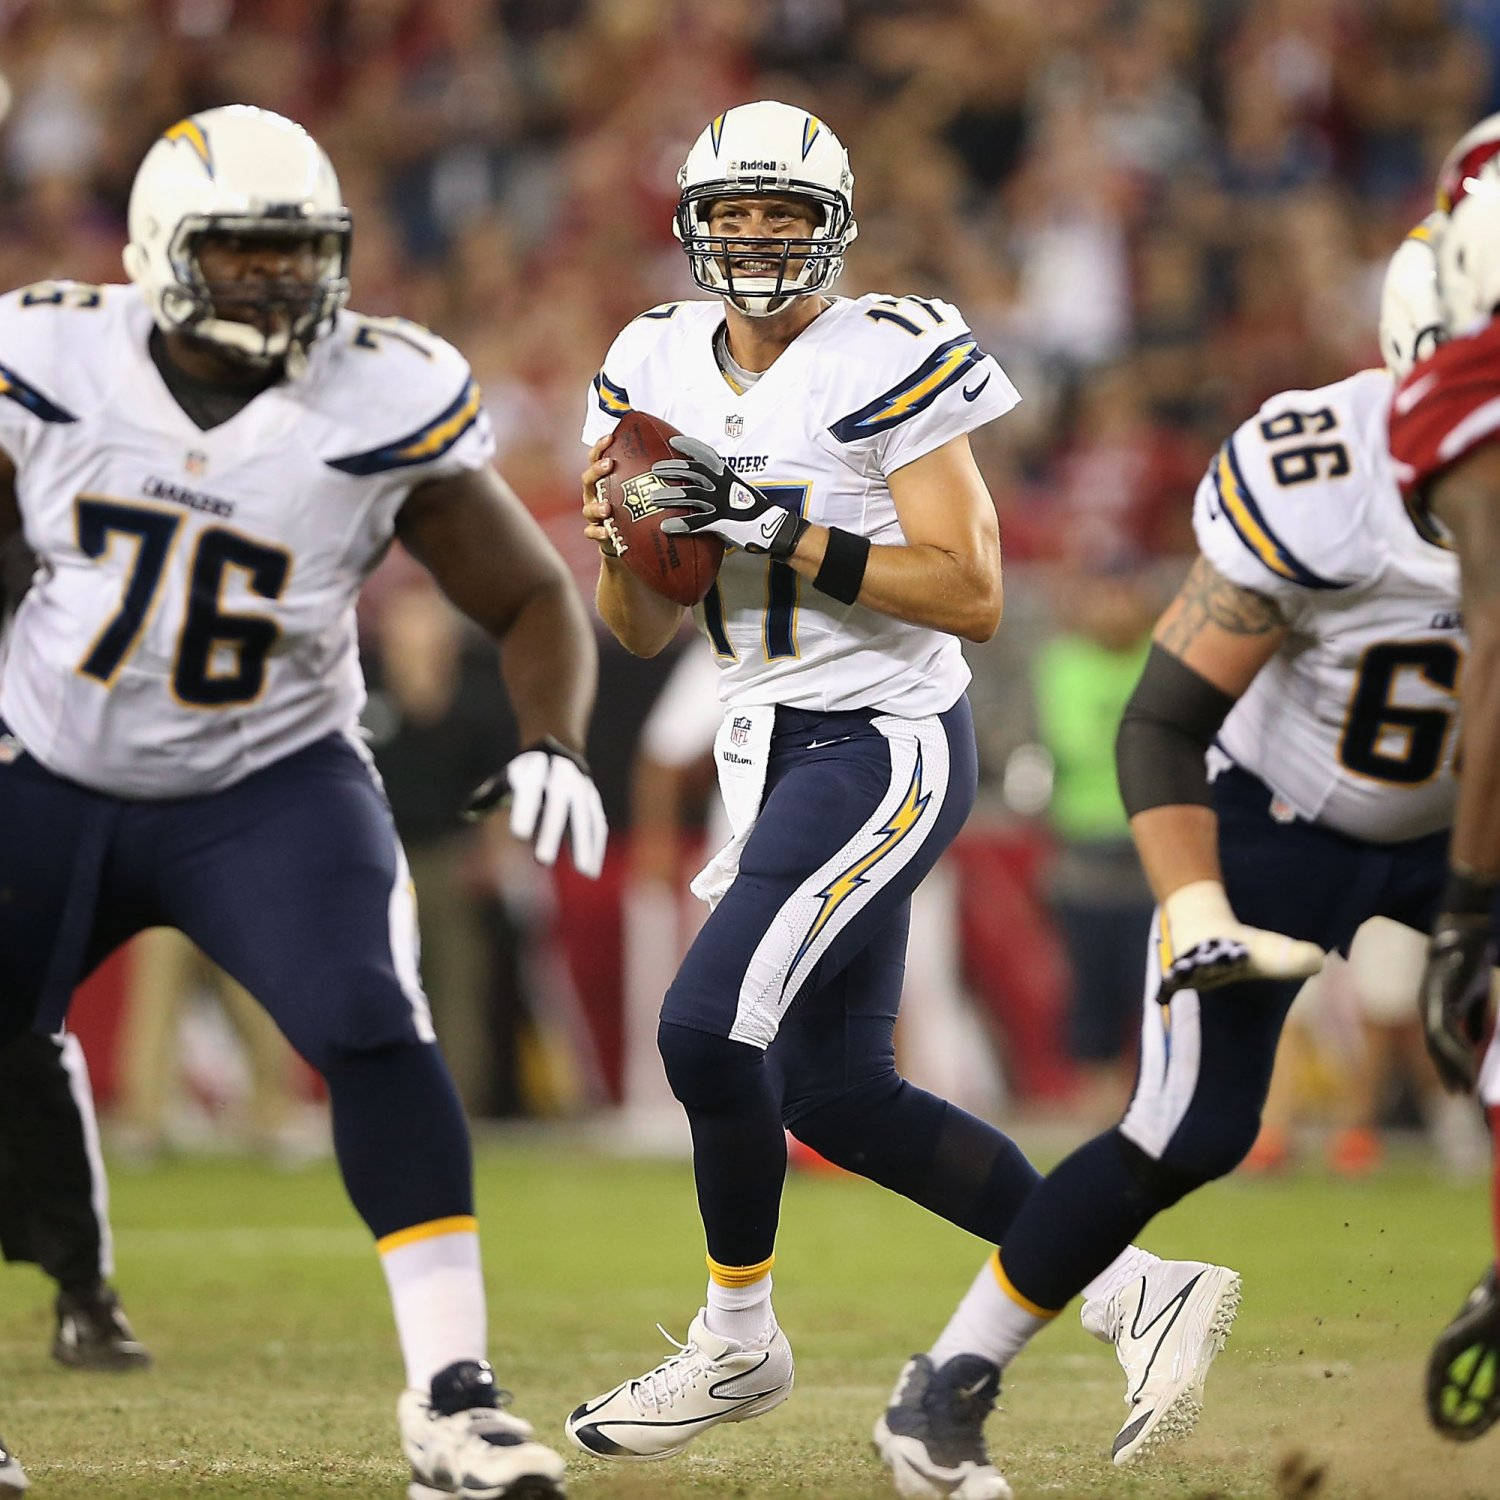 San Diego Chargers Broadcast: San Diego Chargers Vs. Arizona Cardinals: Live Score And